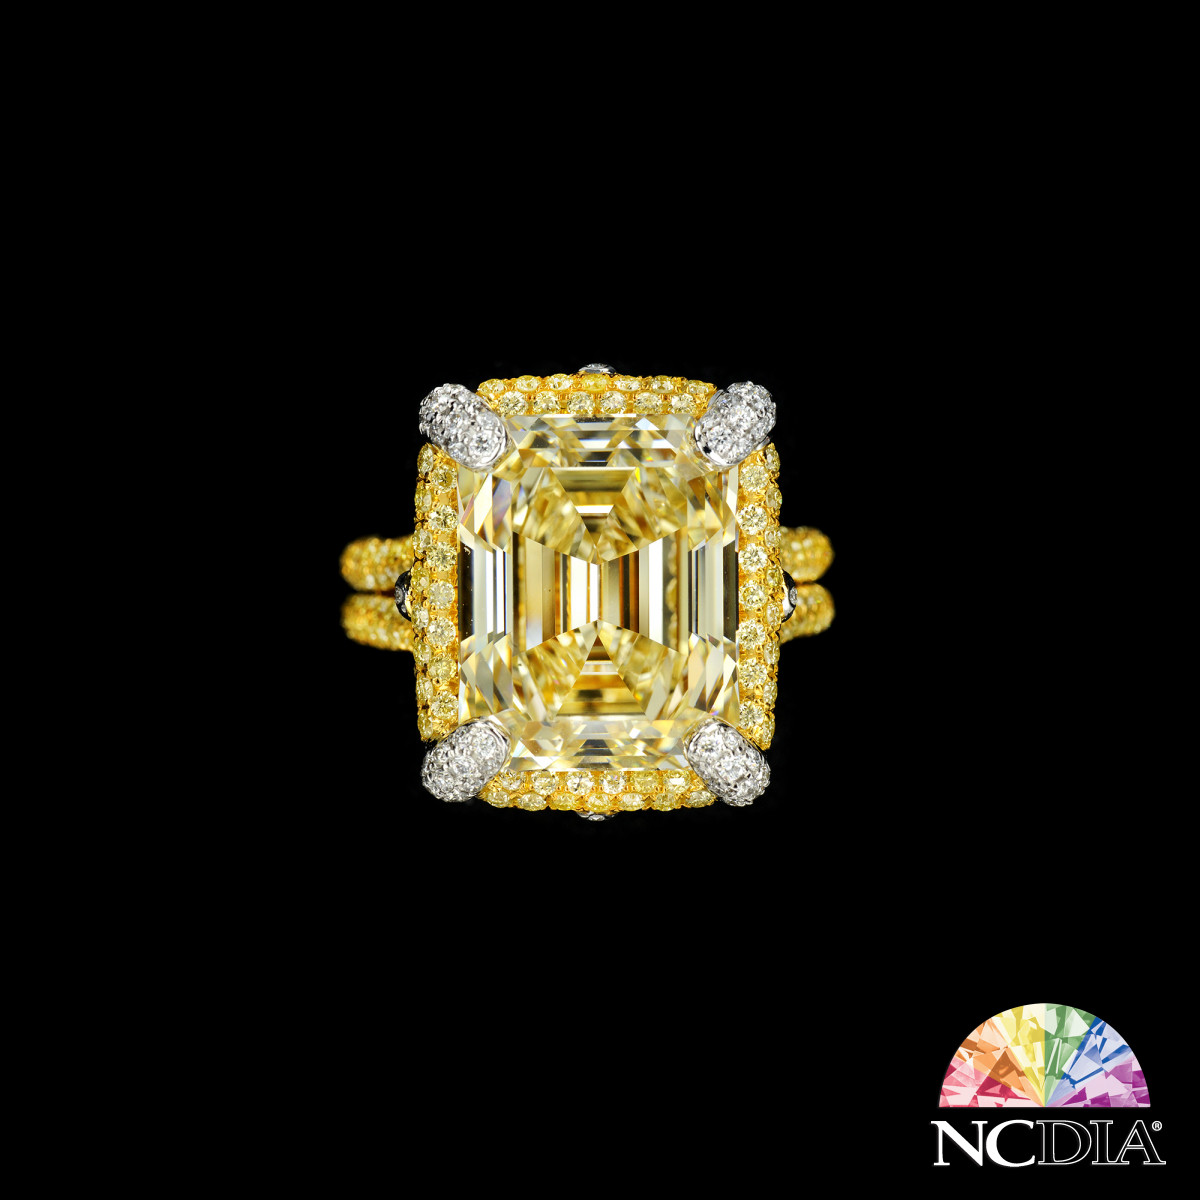 Over 10 cts Emerald cut Fancy Yellow VVS2 Diamond Ring, GIA report ava.